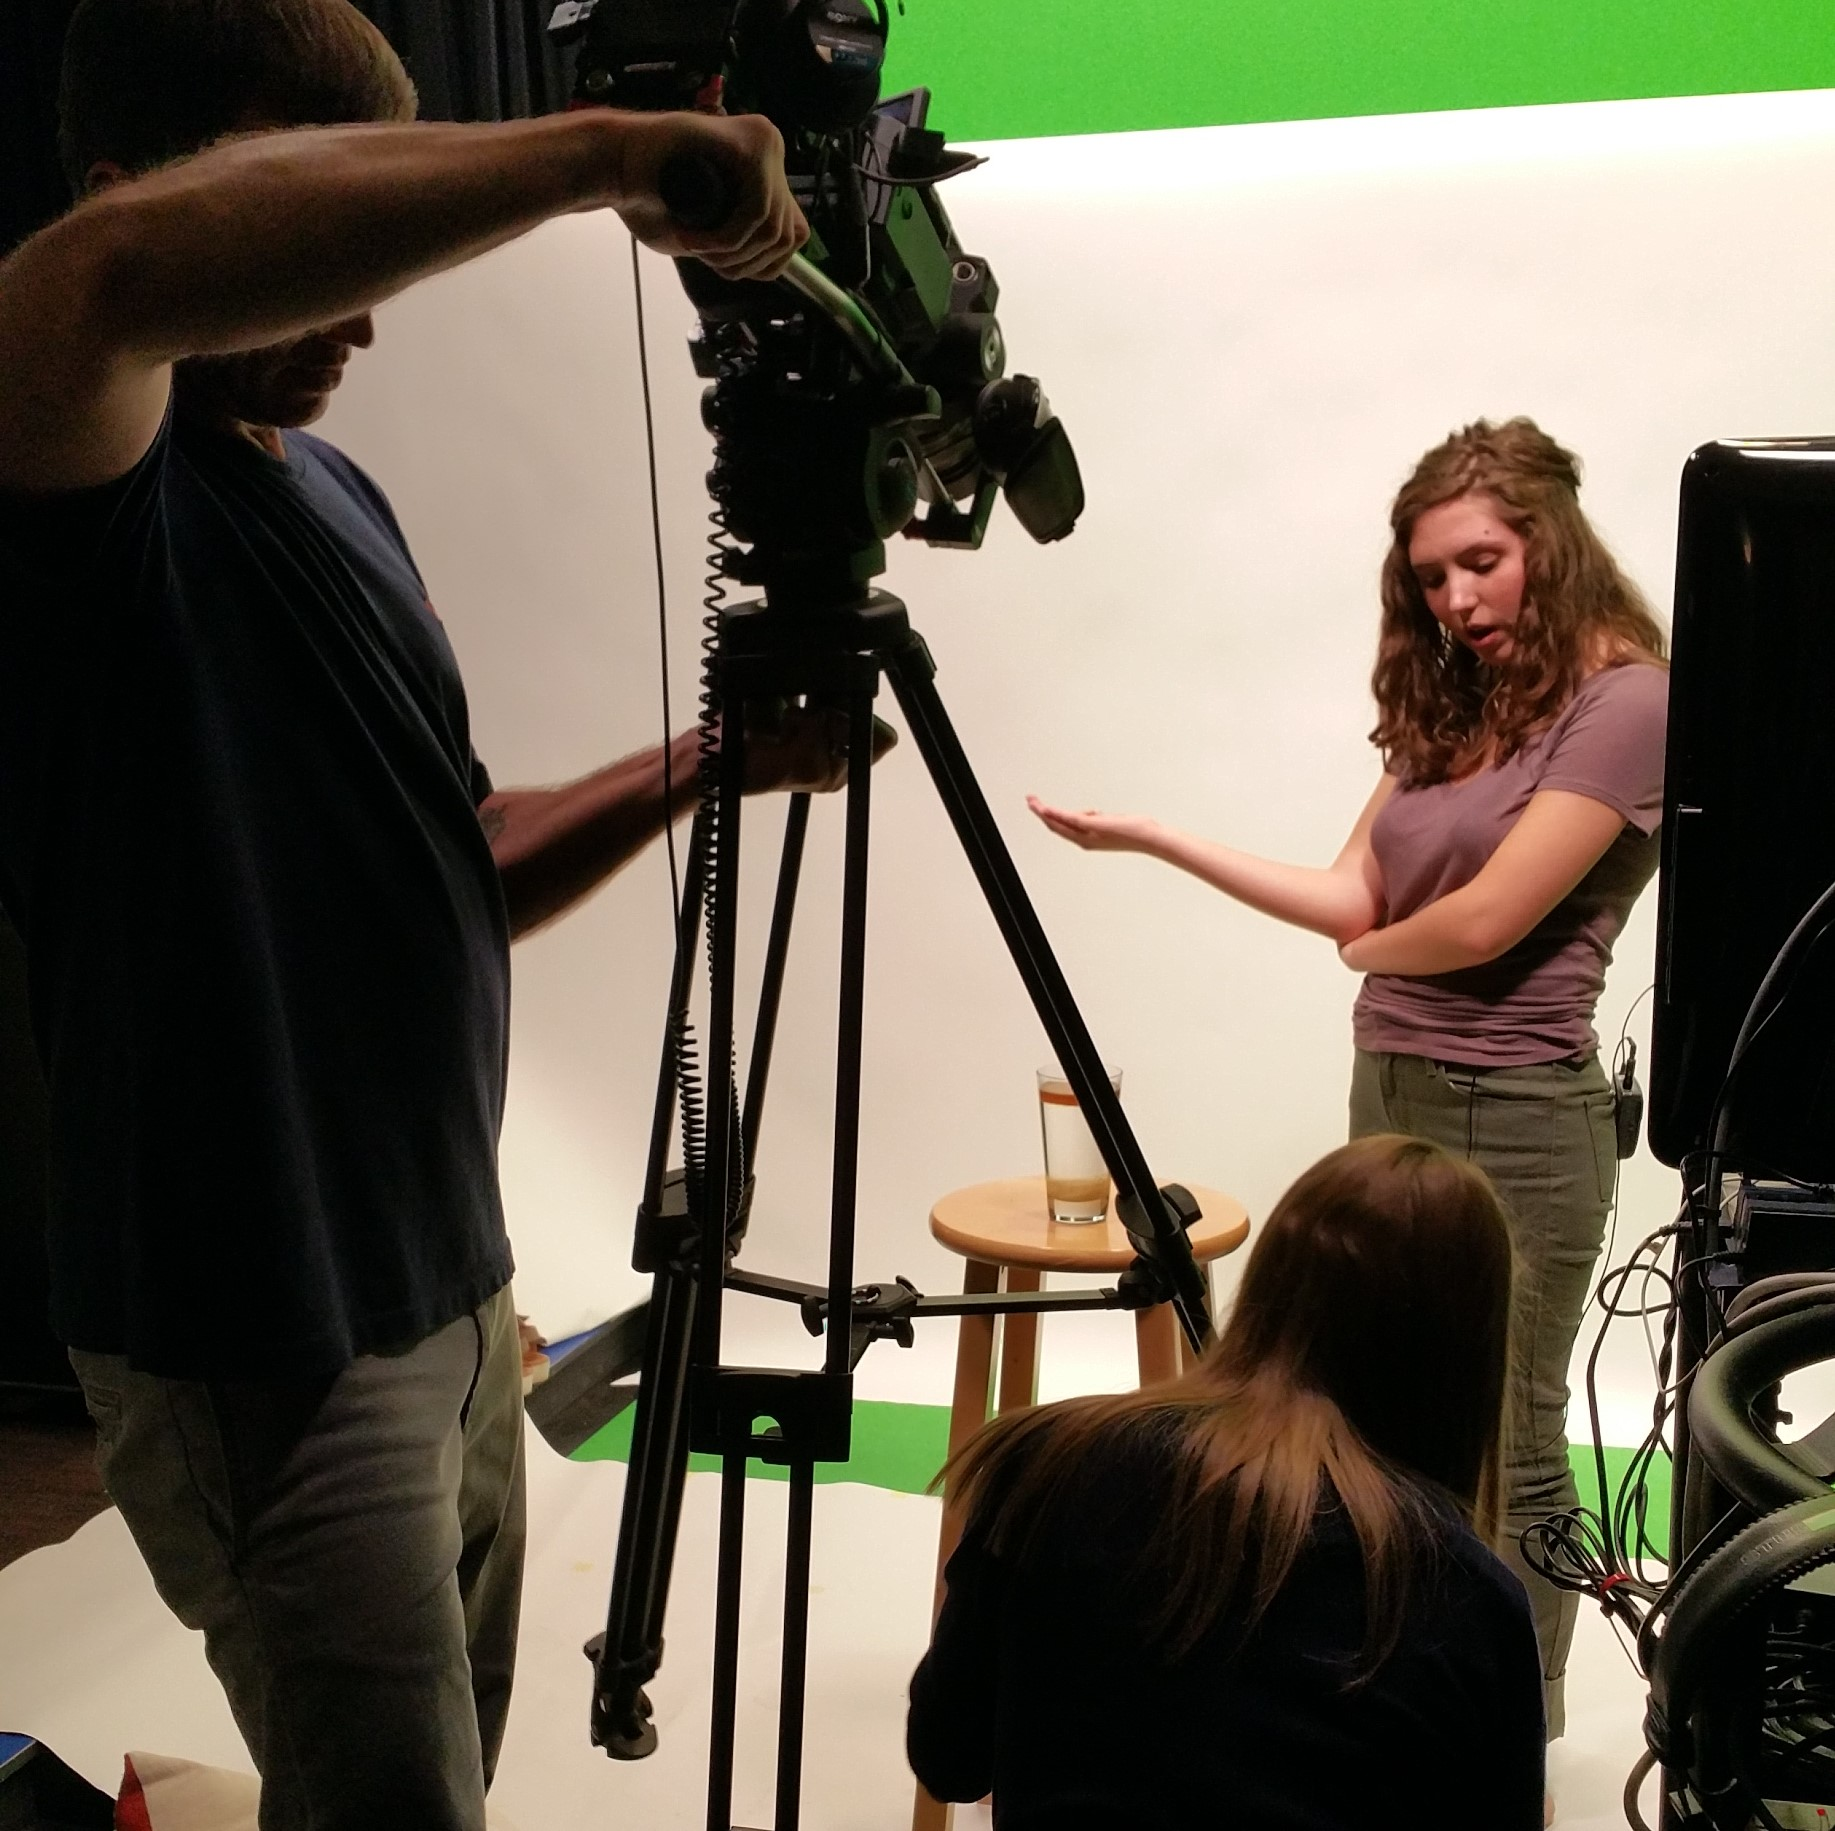 Crew filming student for a Clean Water Works video.